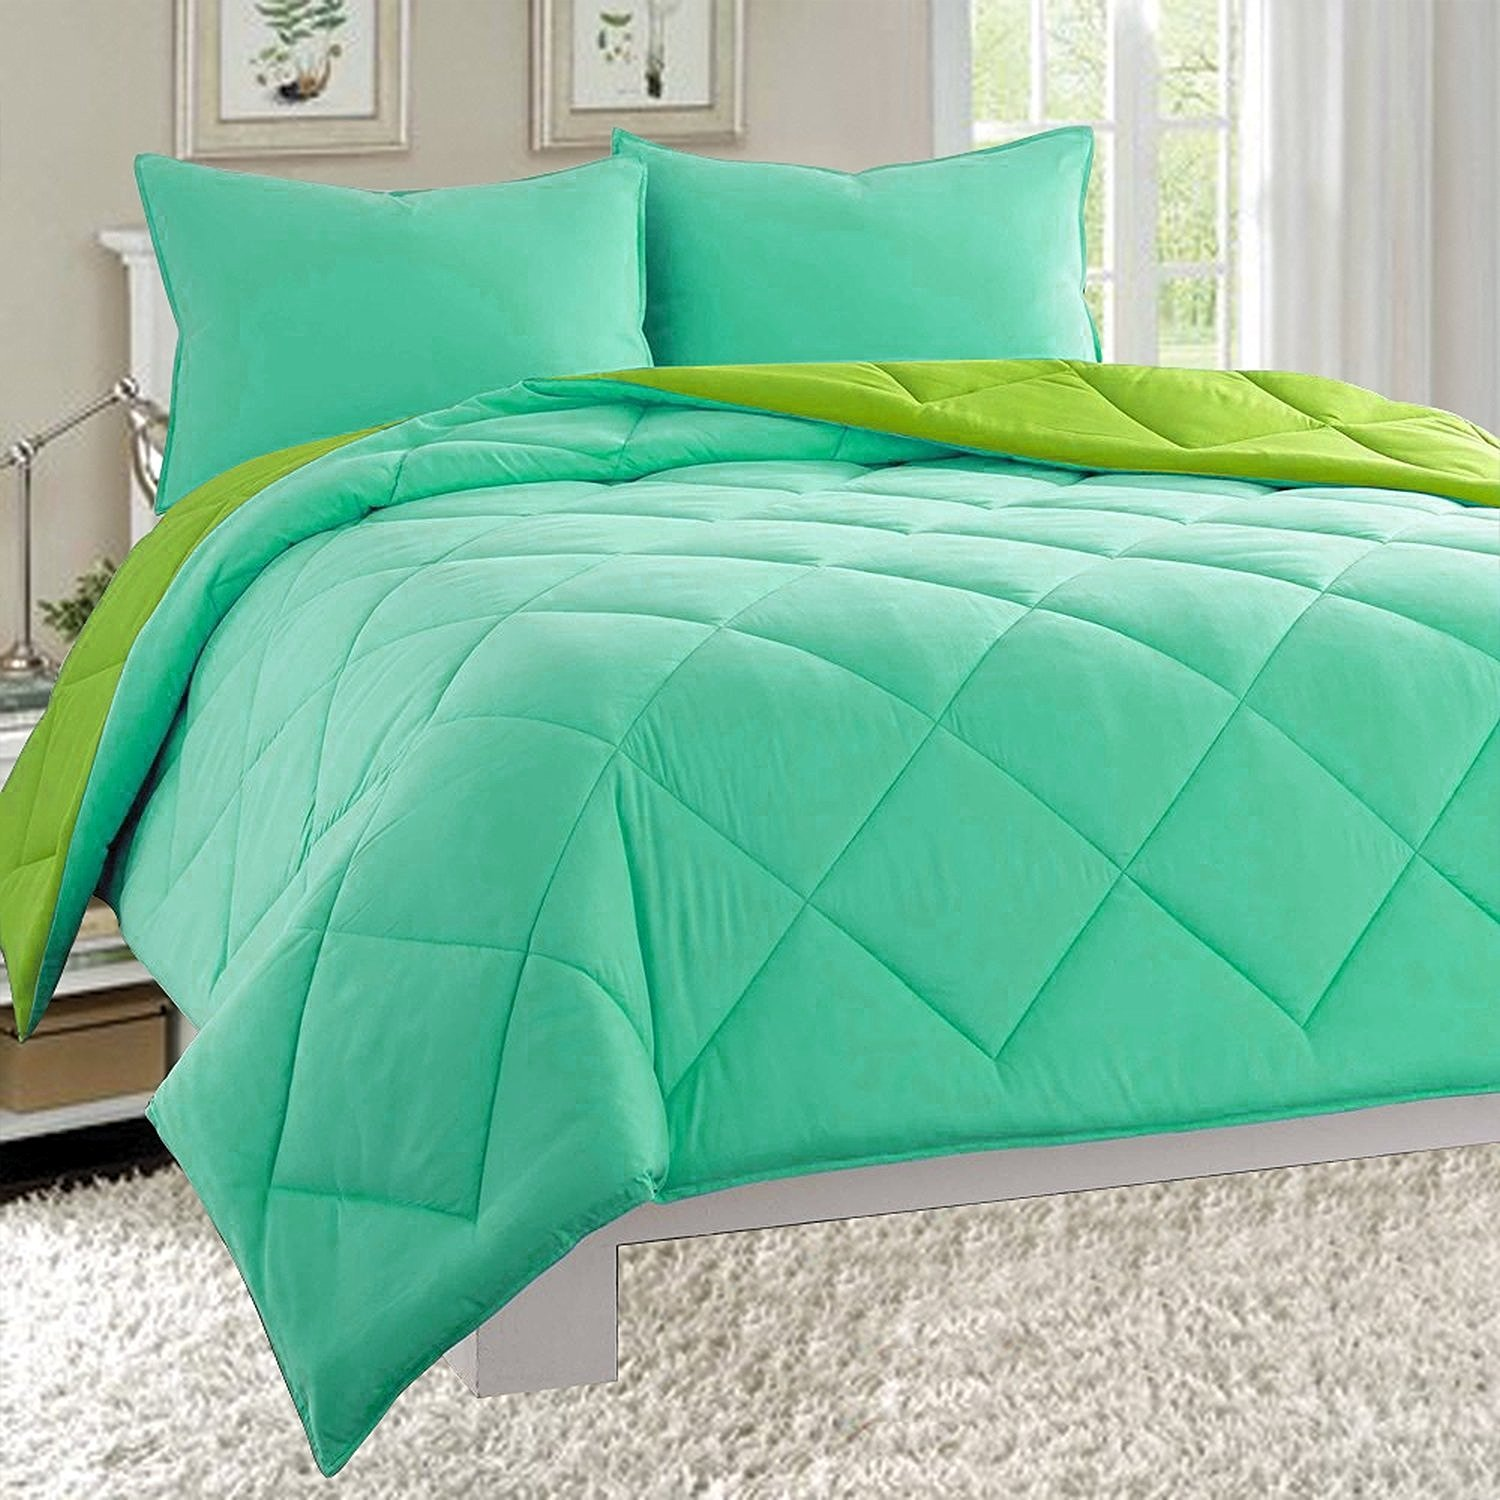 Reversible 3-Piece Comforter Set, Full/Queen, Aqua/Lime